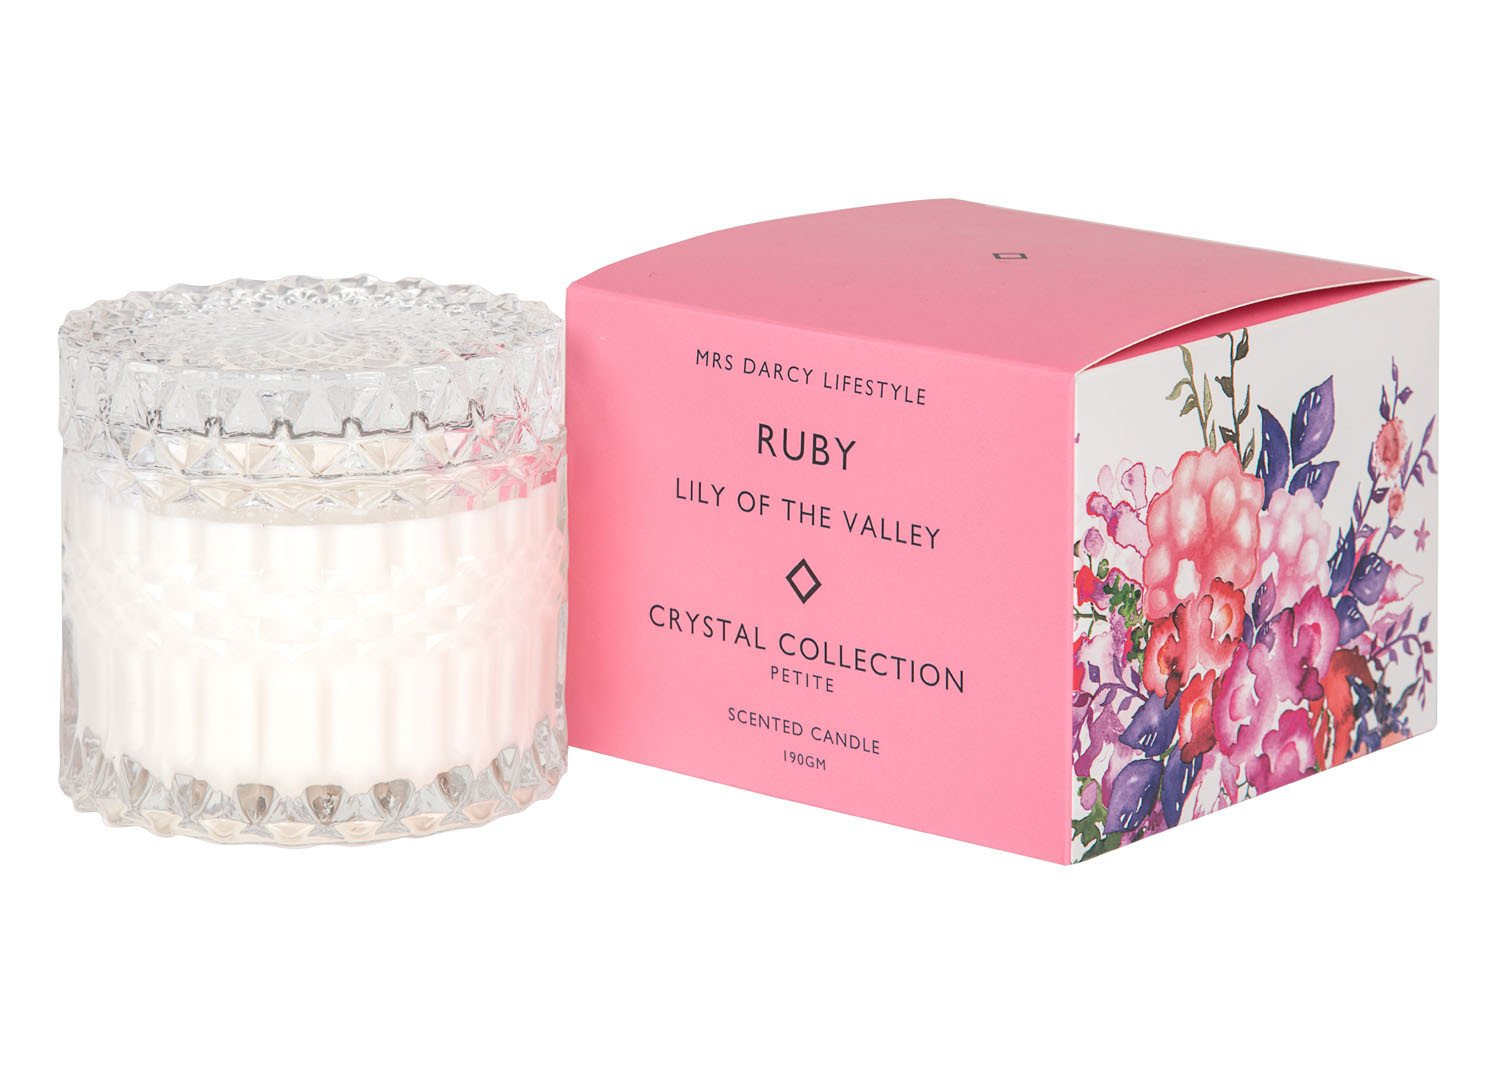 Mrs Darcy Scented Candle Petite - Ruby (Lily of the Valley)